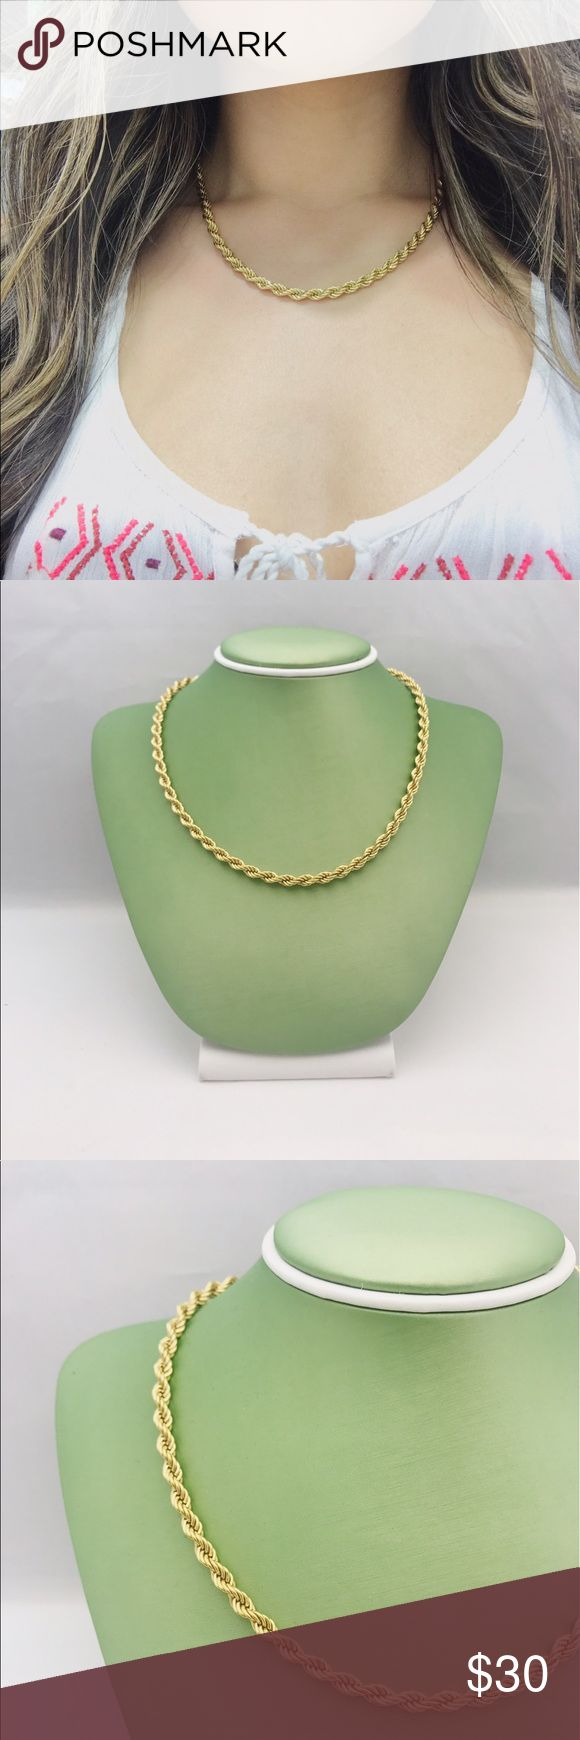 """Gold Rope Chain Gold Rope Chain. Materials: 14k Gold Filled Rope Chain // 18"""" length // 4mm // unisex // male & female Chain // timeless Chain Jewelry Necklaces"""